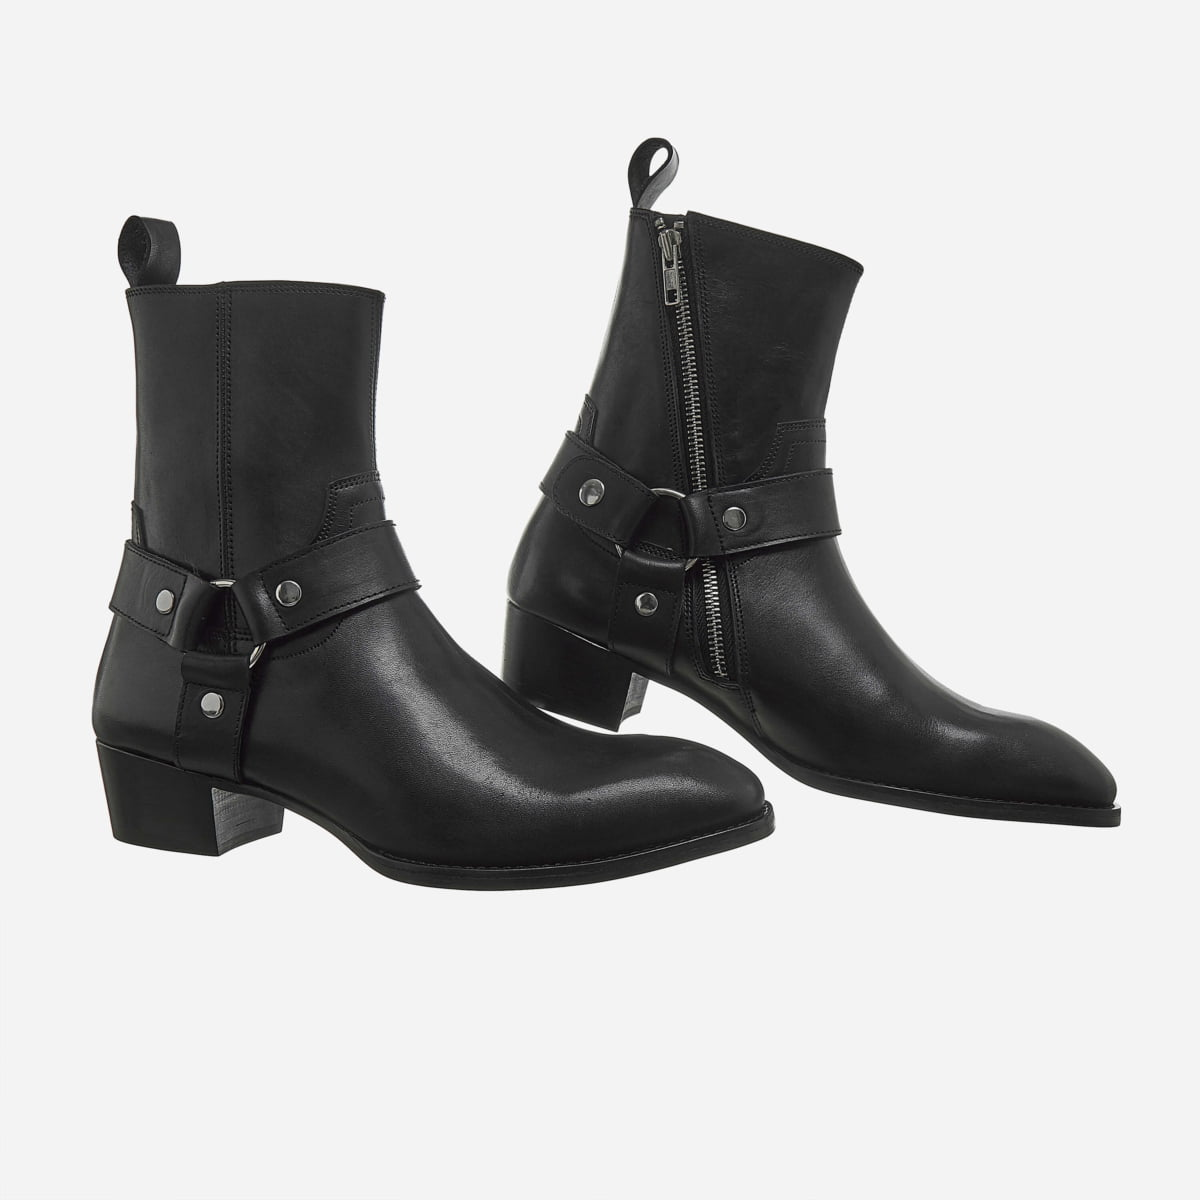 Leather Harness Boots In Black Leather Harness Boots In Black SS2020 4